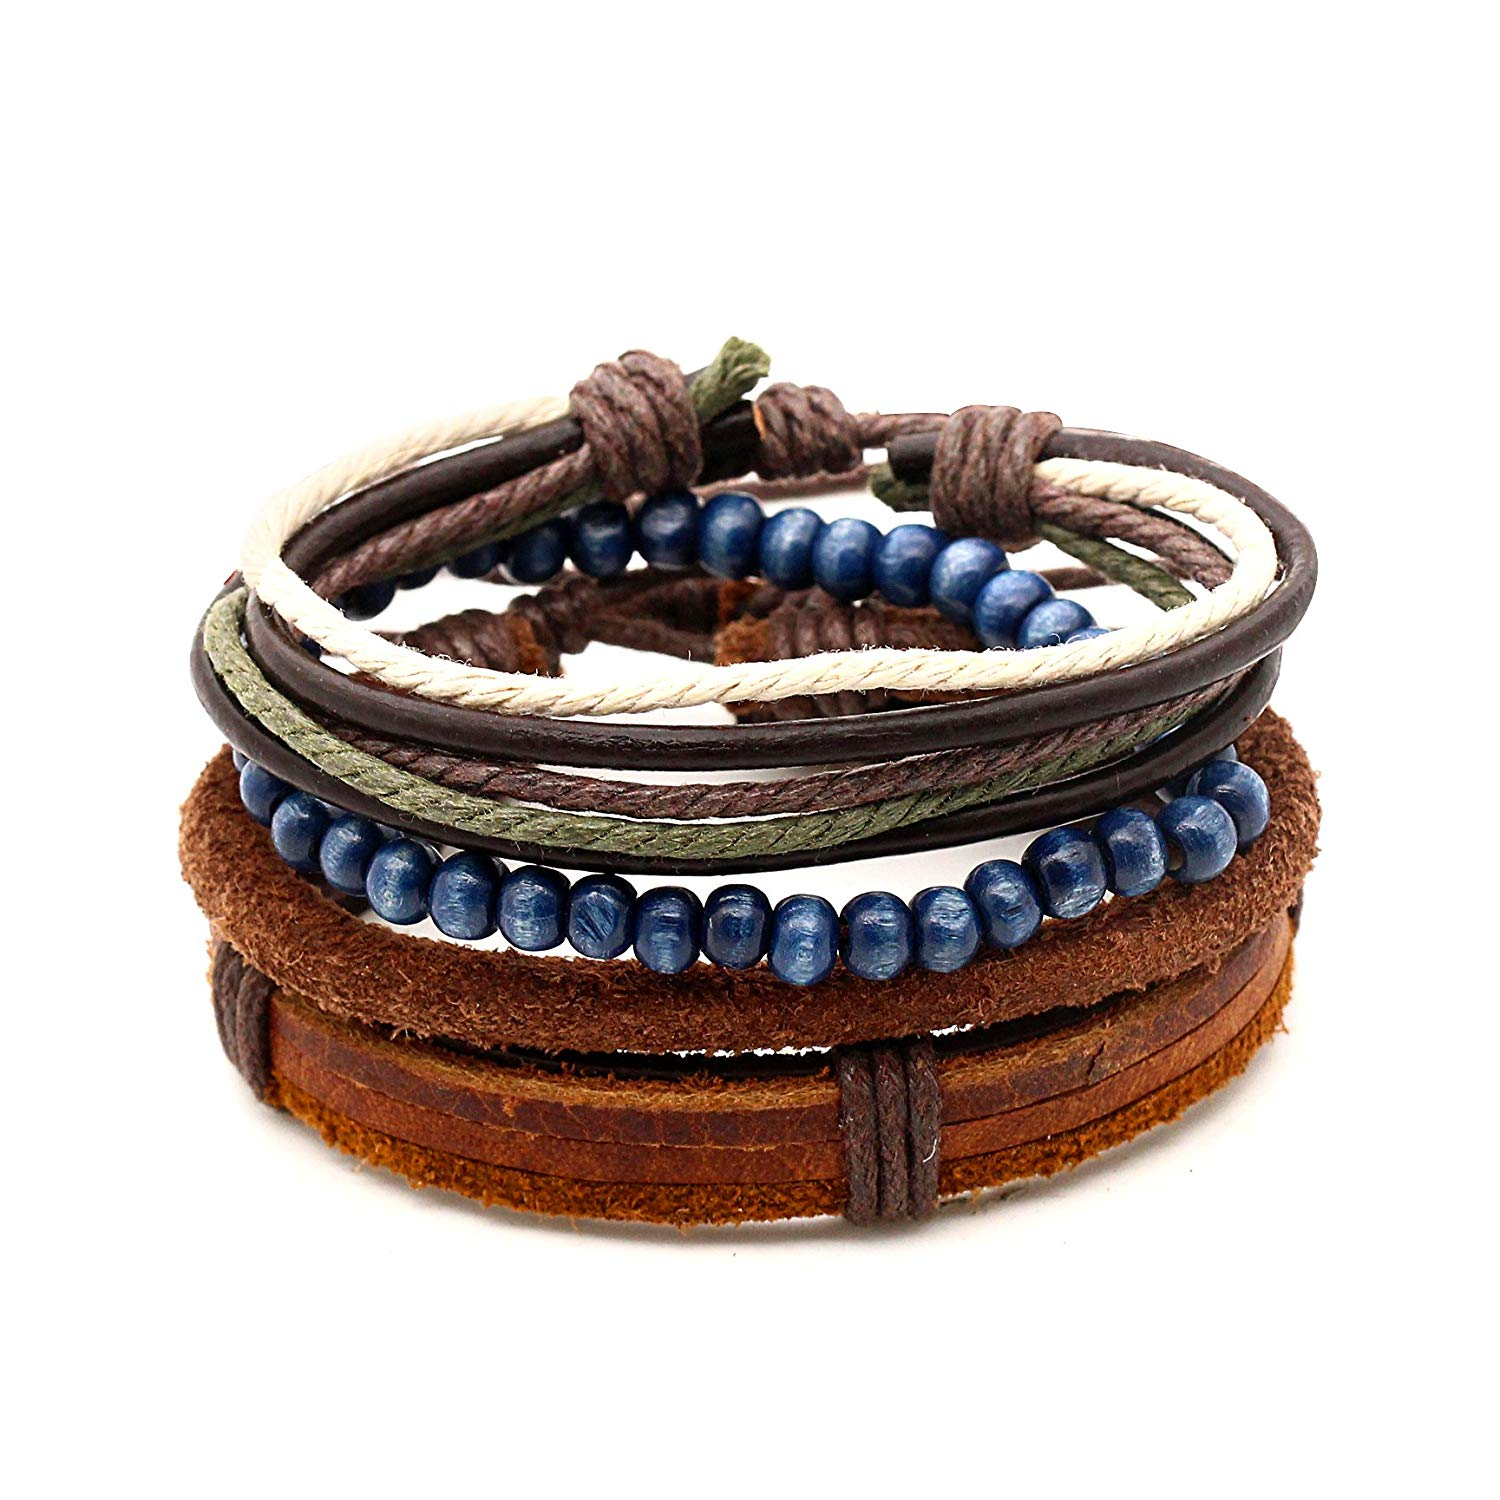 lauhonmin 4pcs Bracelet for Men Women Hemp Cords Wood Bead Bracelets Leather Wristbands Handmade Adjustable